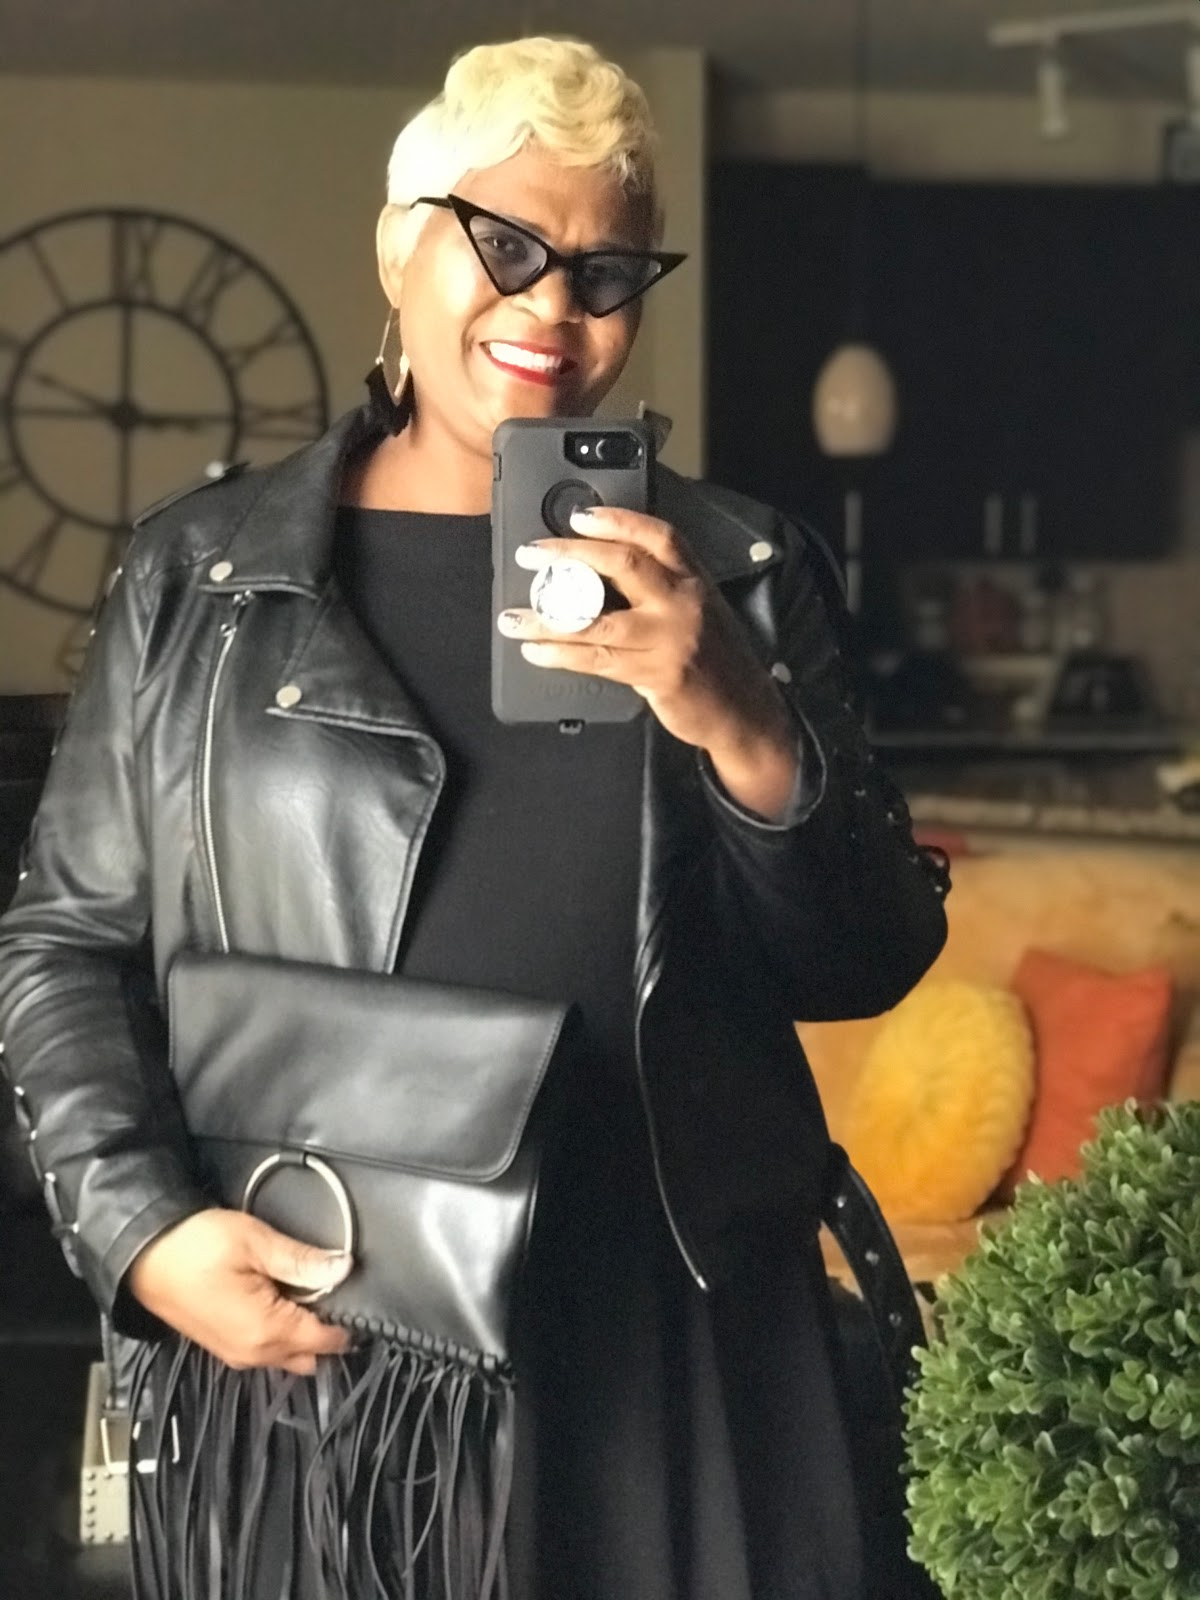 Tangie Bell is sharing her fringe clutch with all black outfit before heading out to DIY shop for sales and make jewelry